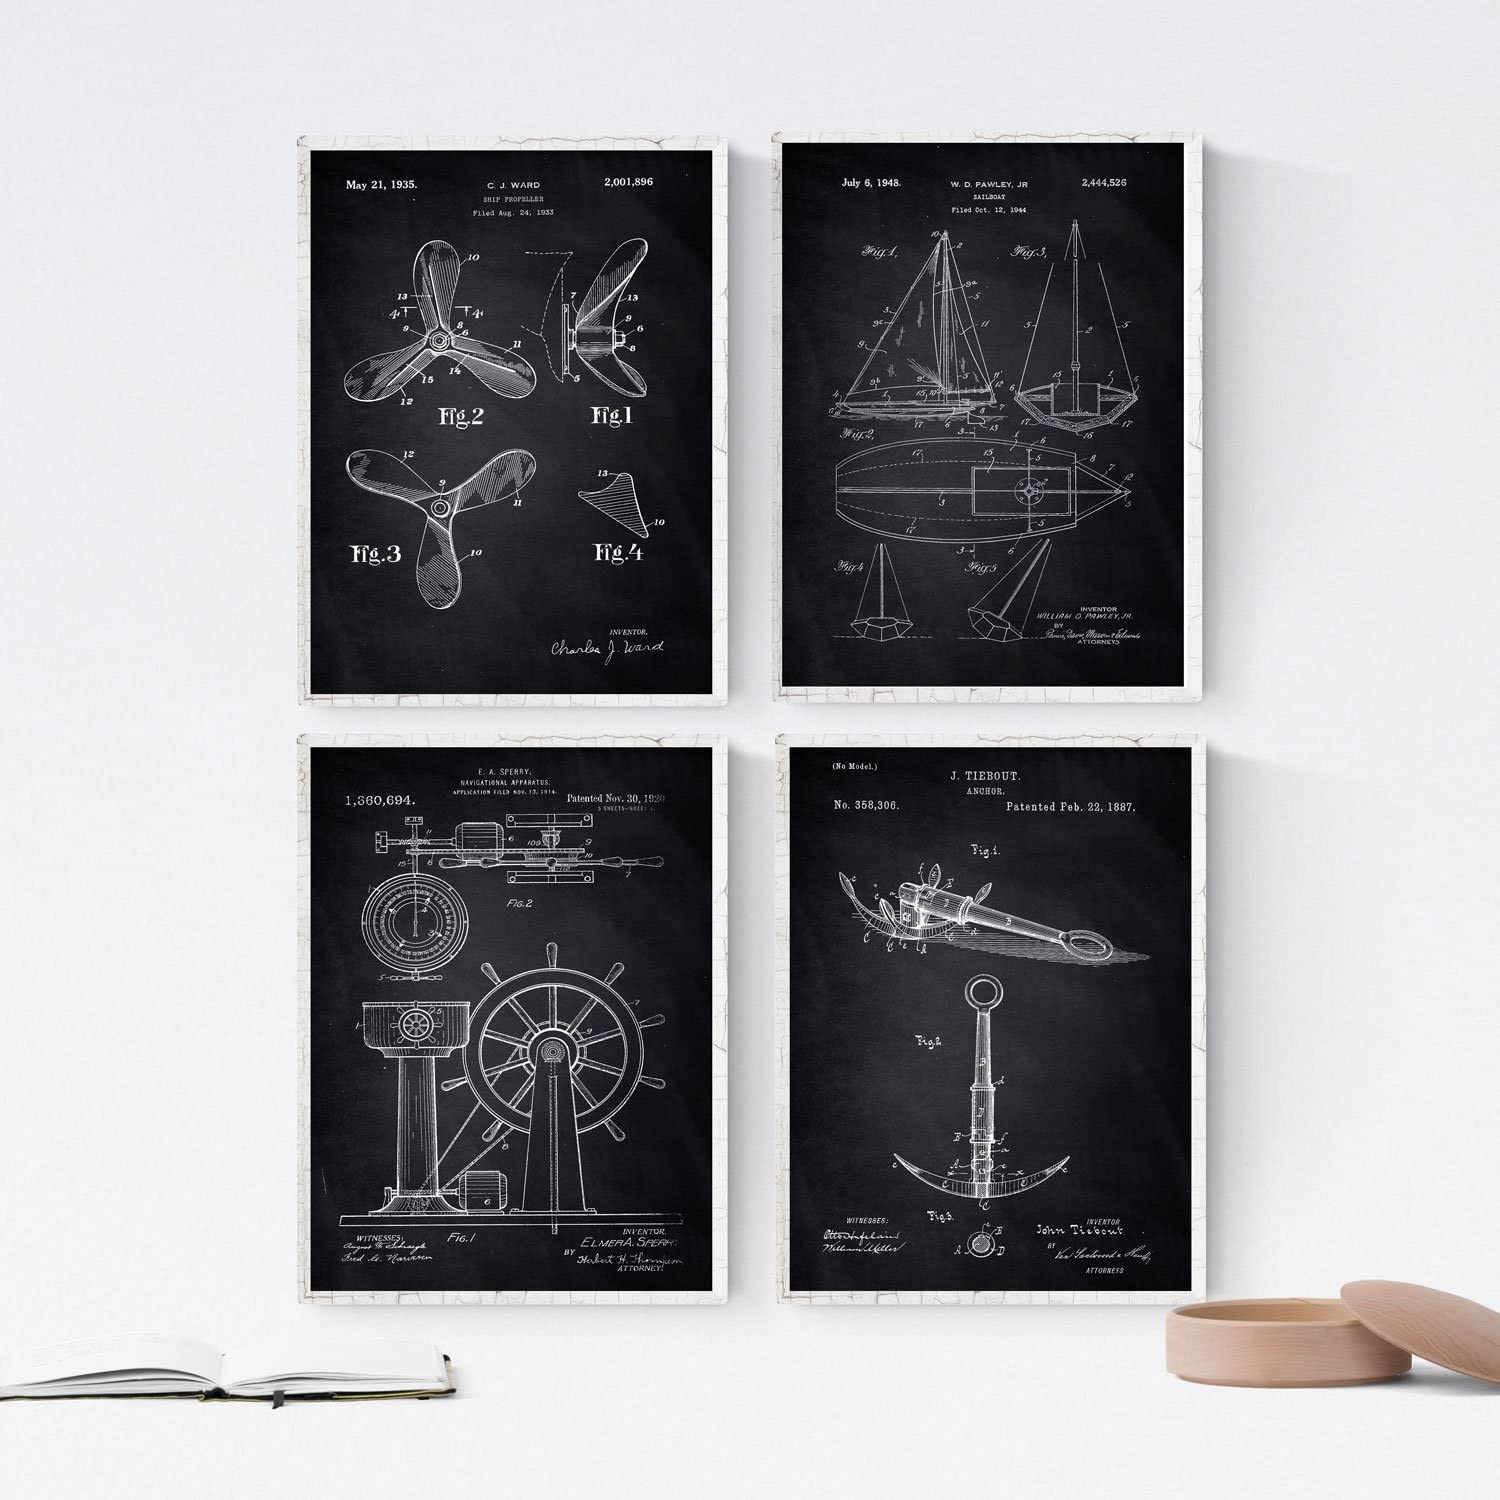 Nacnic Prints Vintage Inventions Patents Boats - Set of 4 - Unframed 8x11 inch Size - 250g Paper - Beautiful Poster Painting for Home Office Living Room